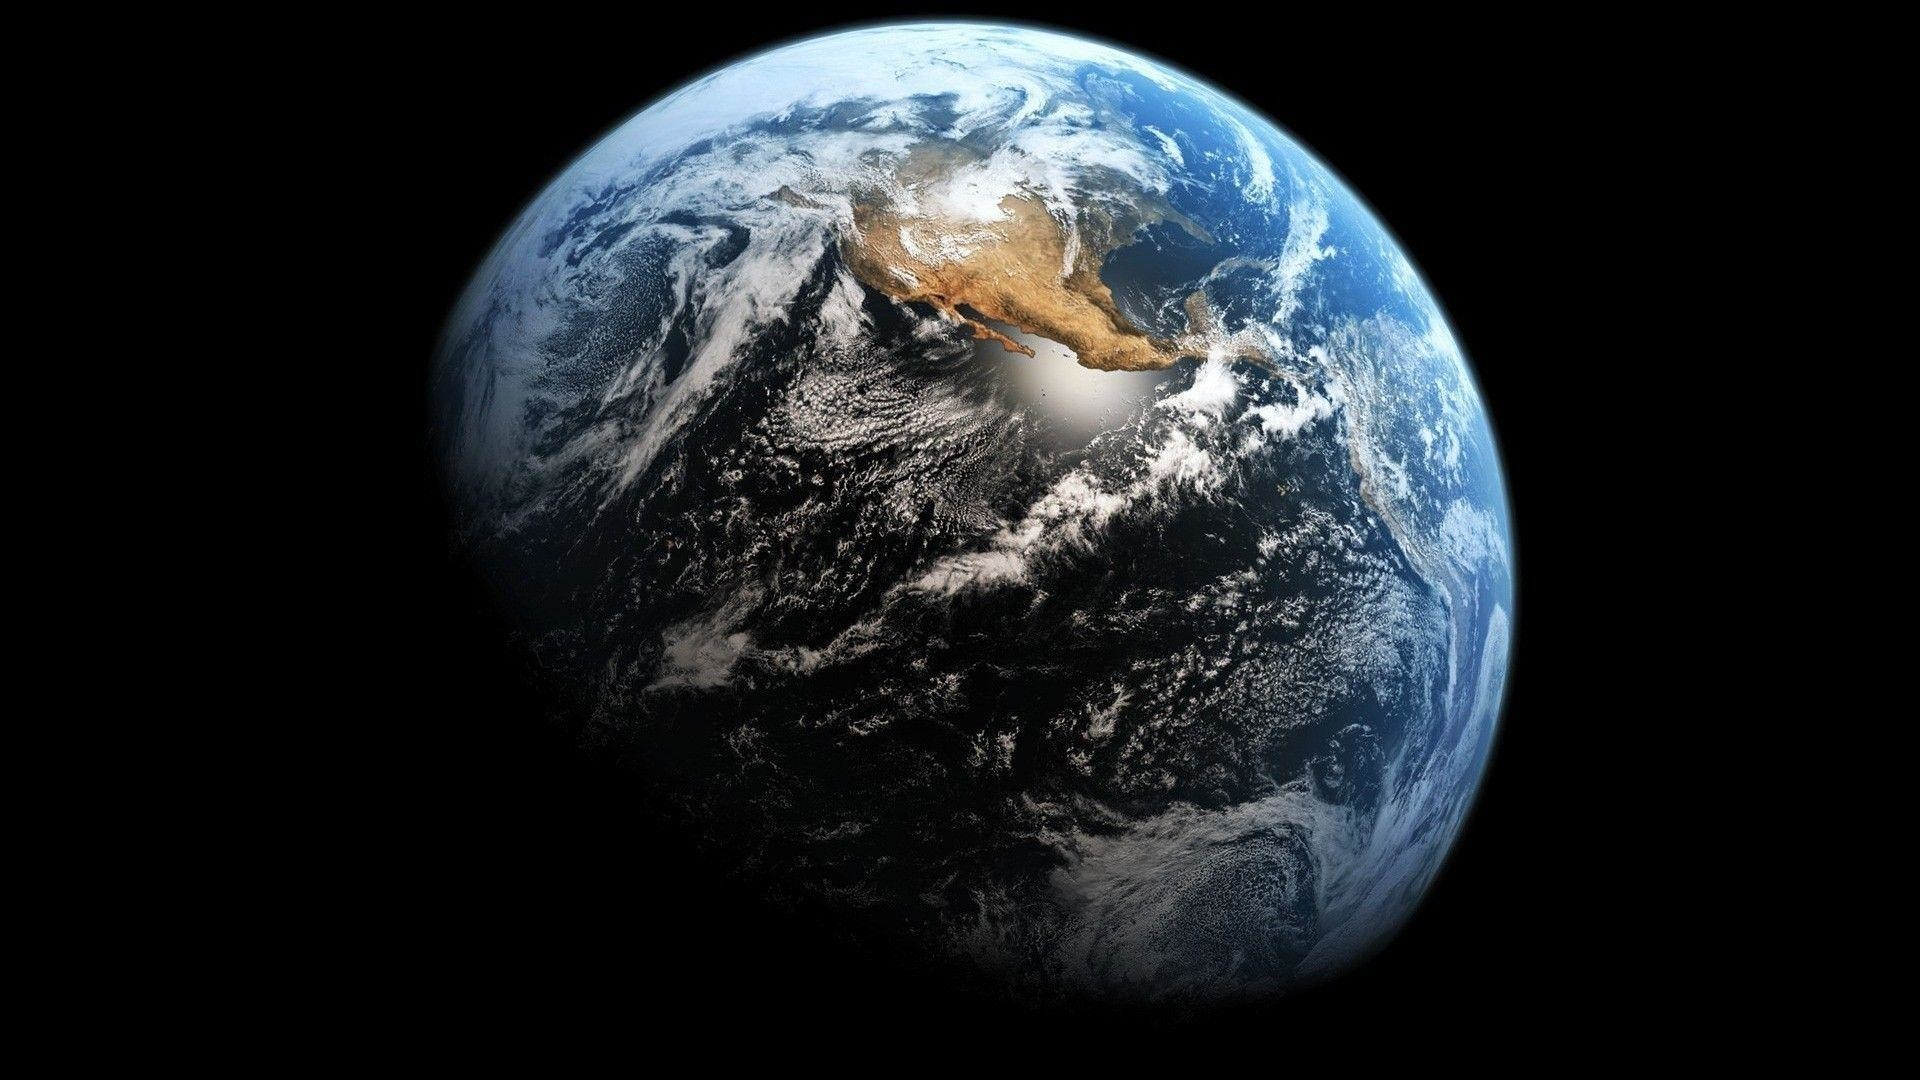 Earth desktop wallpaper – One of the Planets in our Solar System